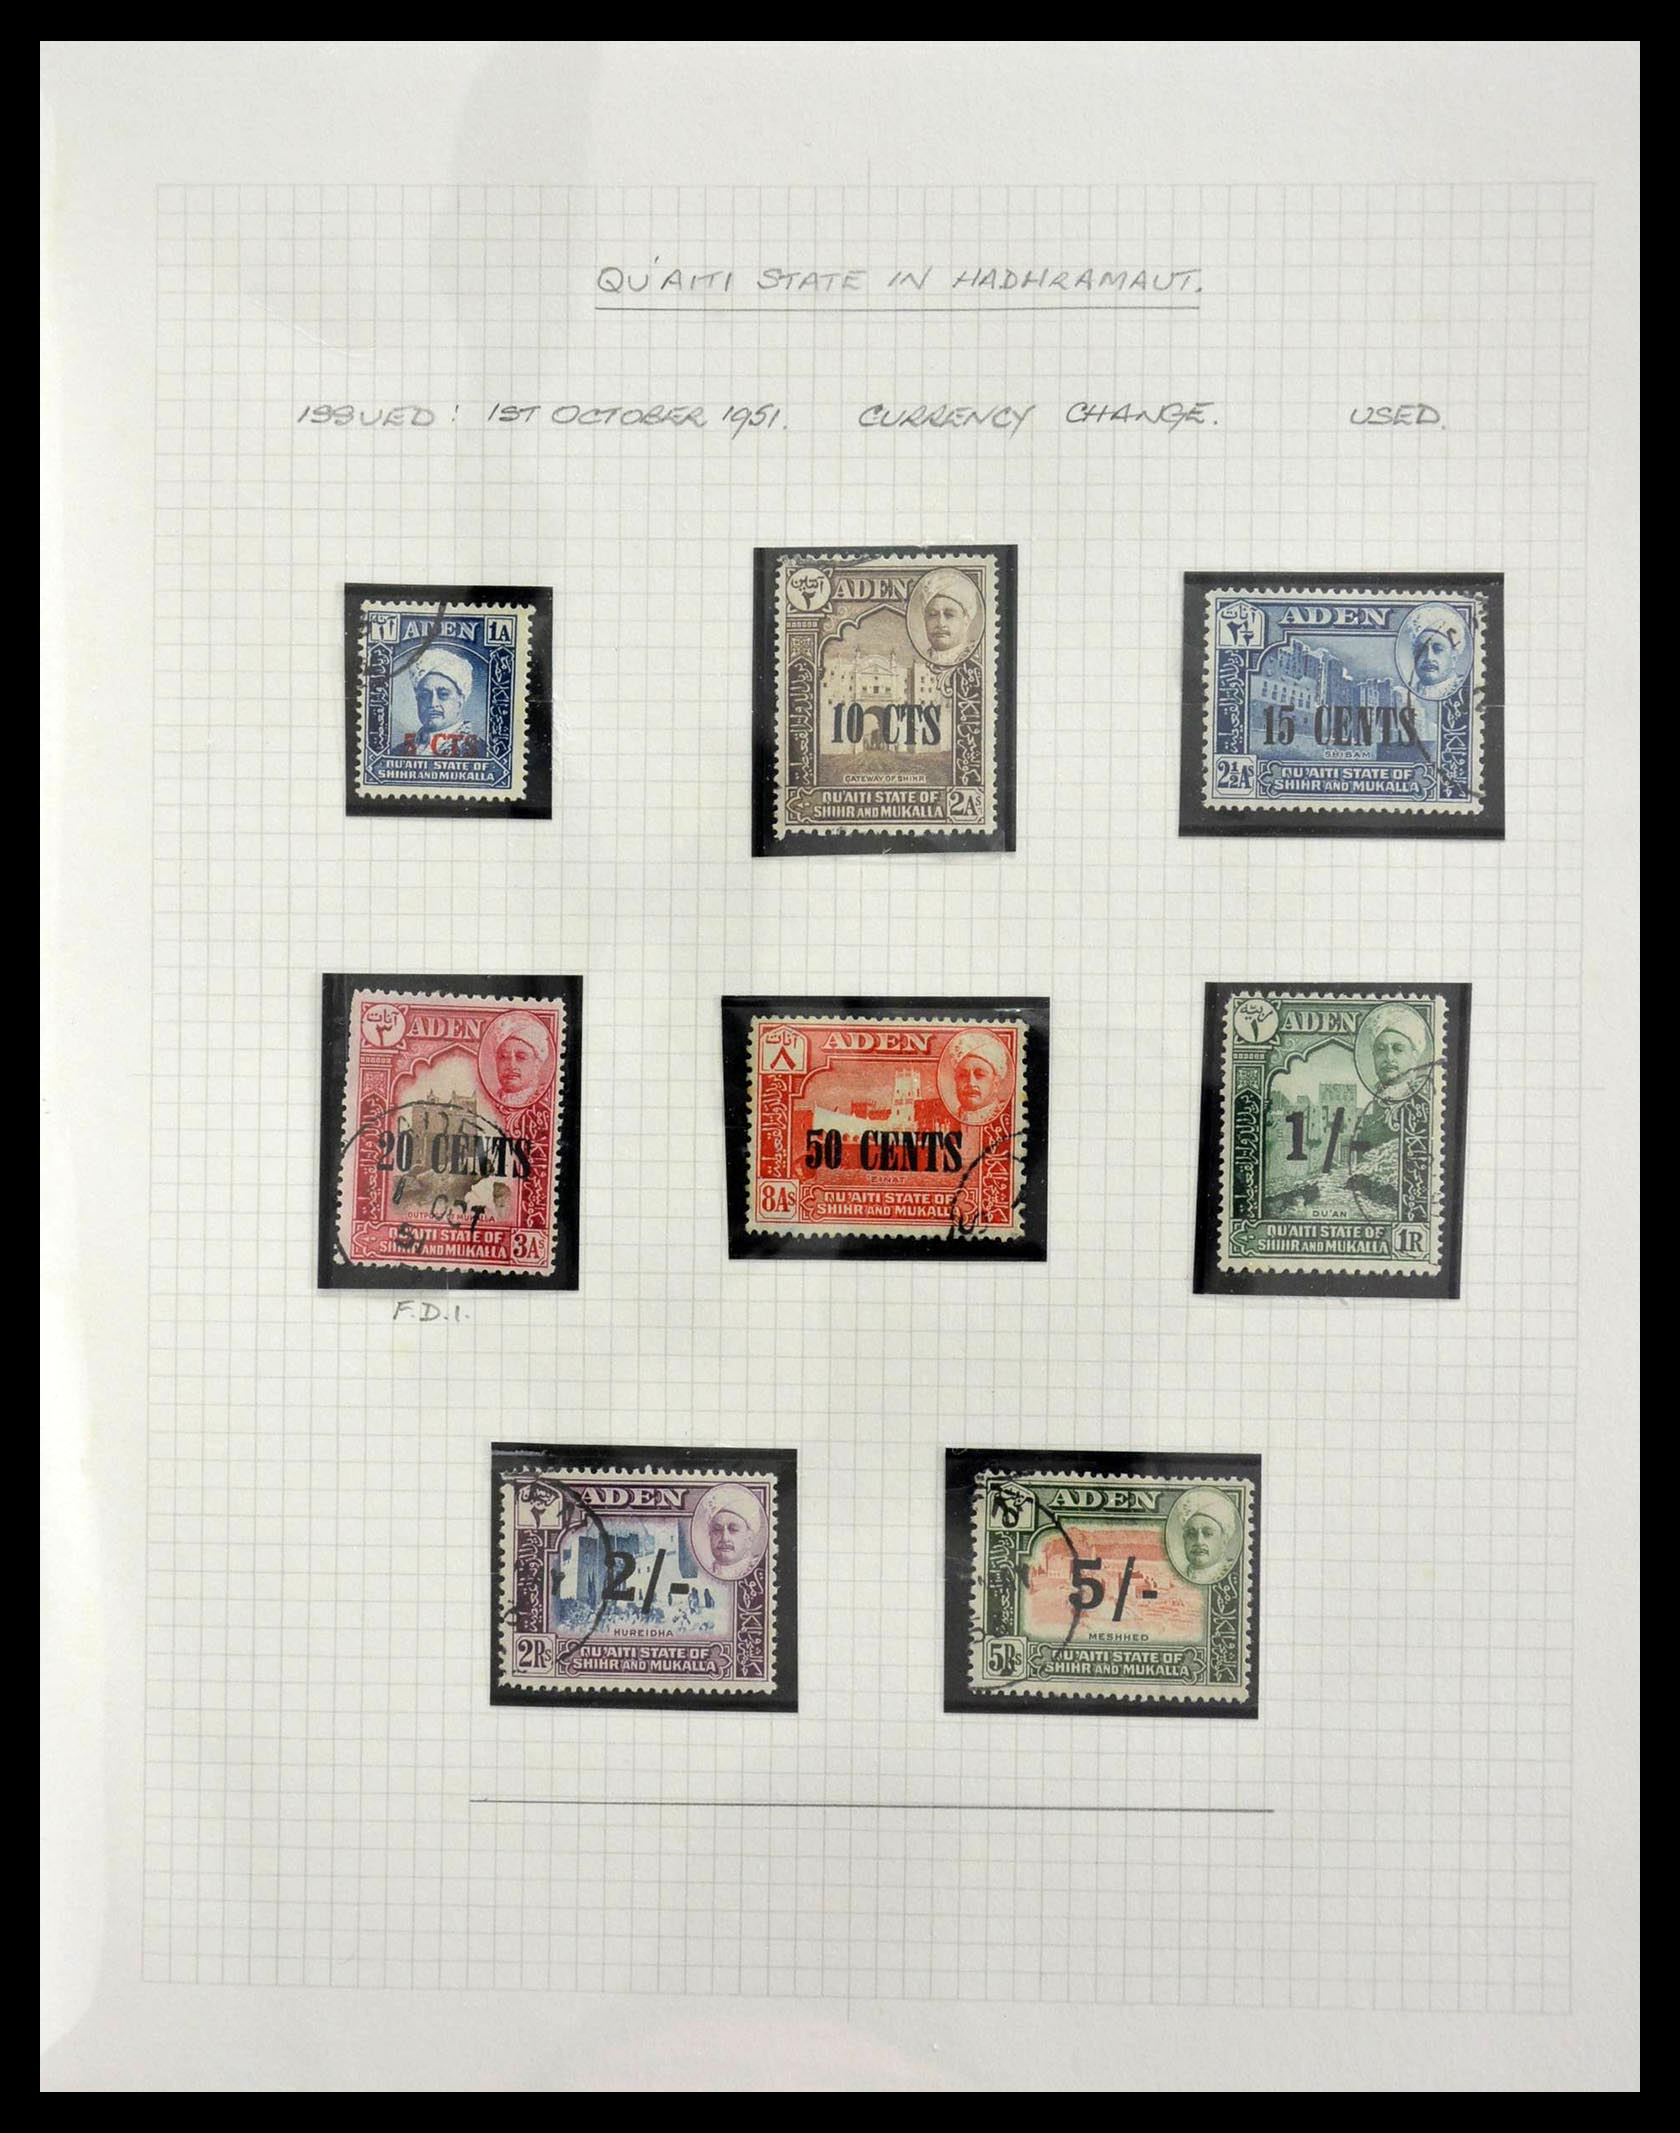 Lot 16004A - Aden - Qu'aiti State in Hadhramaut  -  Auktionshaus Christoph Gärtner GmbH & Co. KG Sale #49 Collections Overseas, Thematics, Europe, Germany/Estates